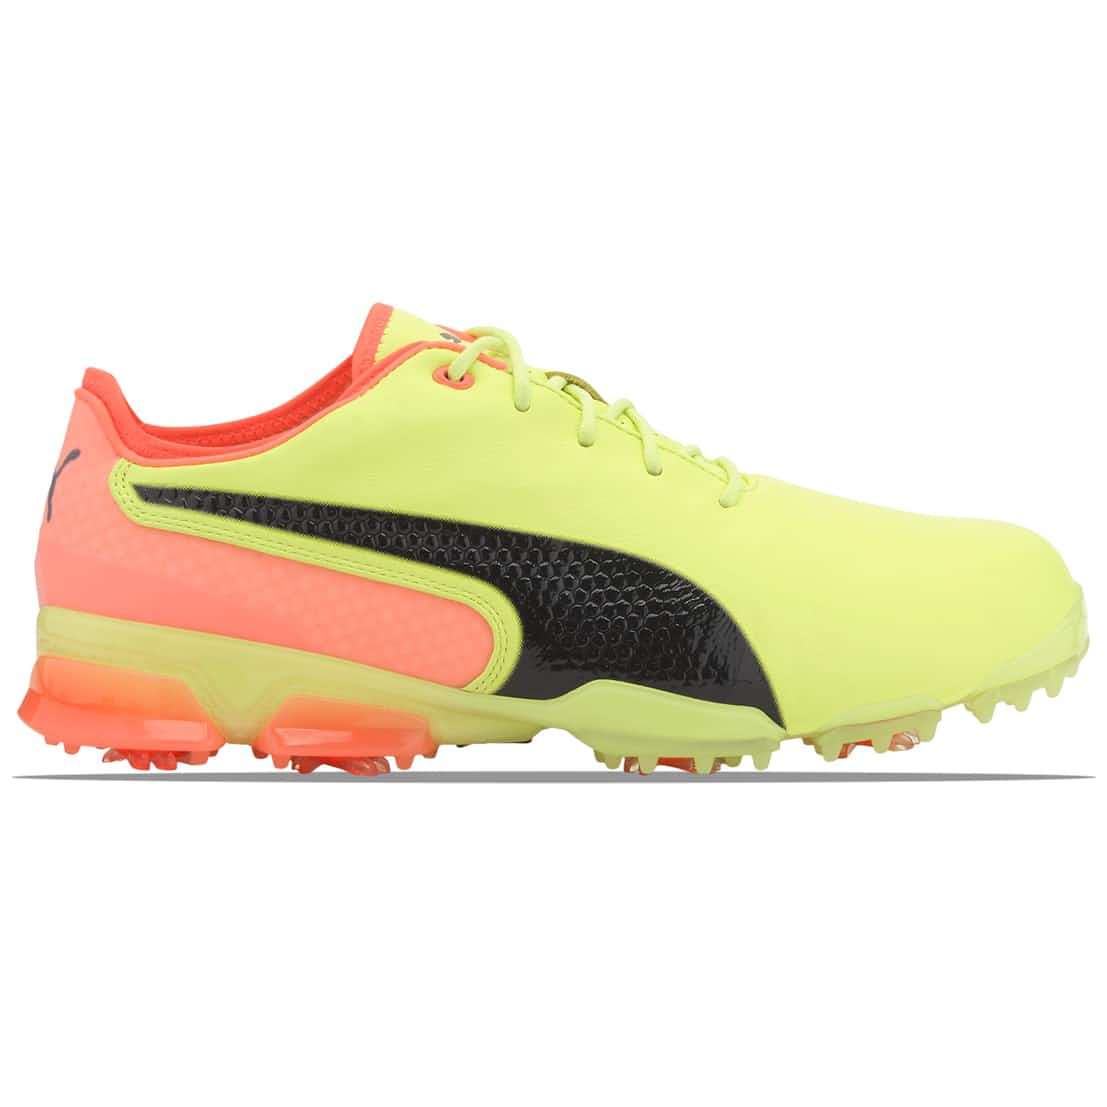 Ignite PROADAPT Rise Up Fizzy Yellow/Nrgy Peach/Black - AW20